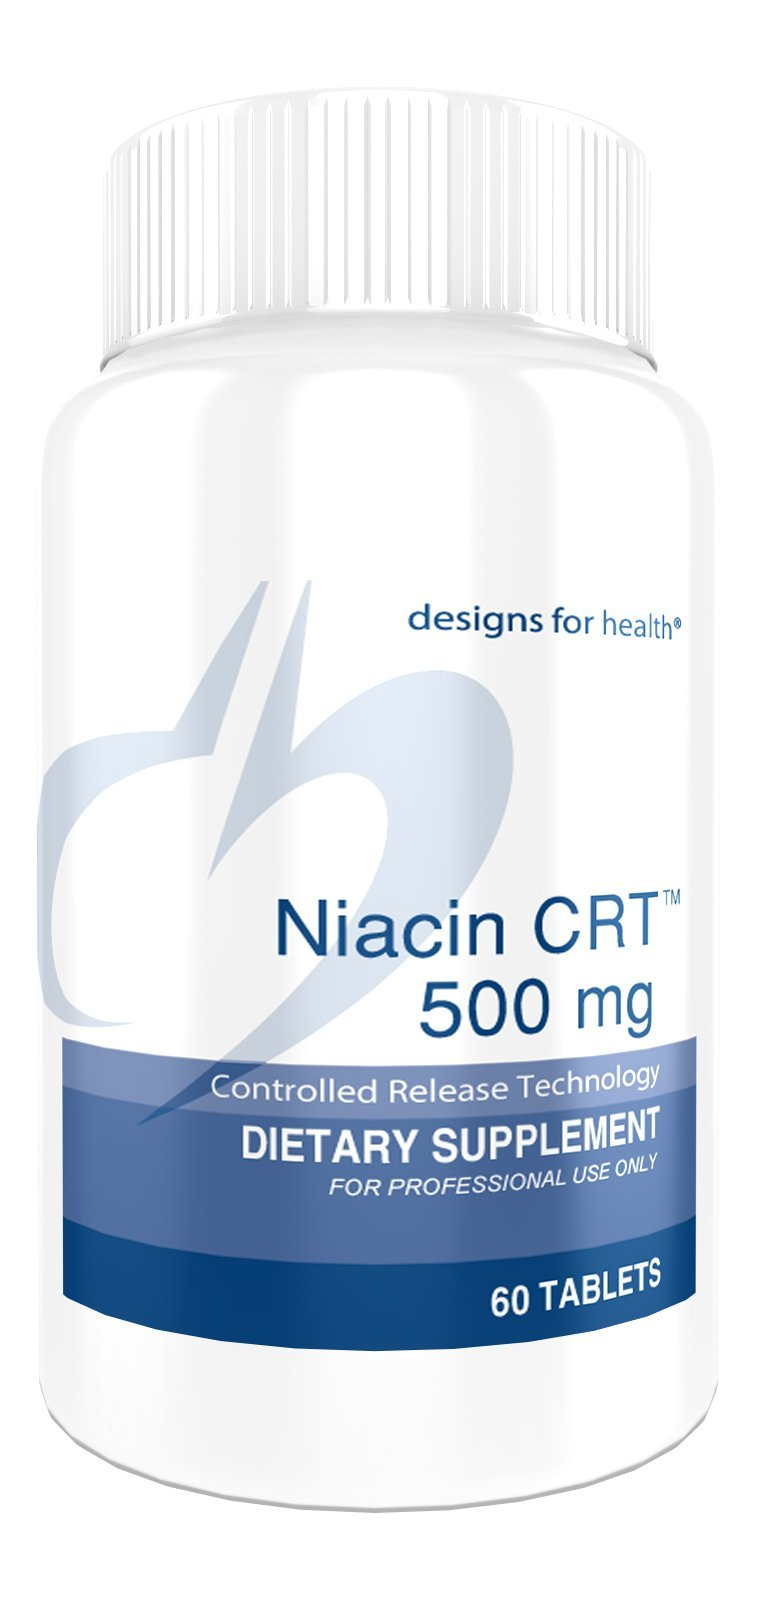 Designs for Health 500mg Niacin Flush-Free - Niacin CRT, Slow Timed Release Tablets (60 Tablets) by designs for health